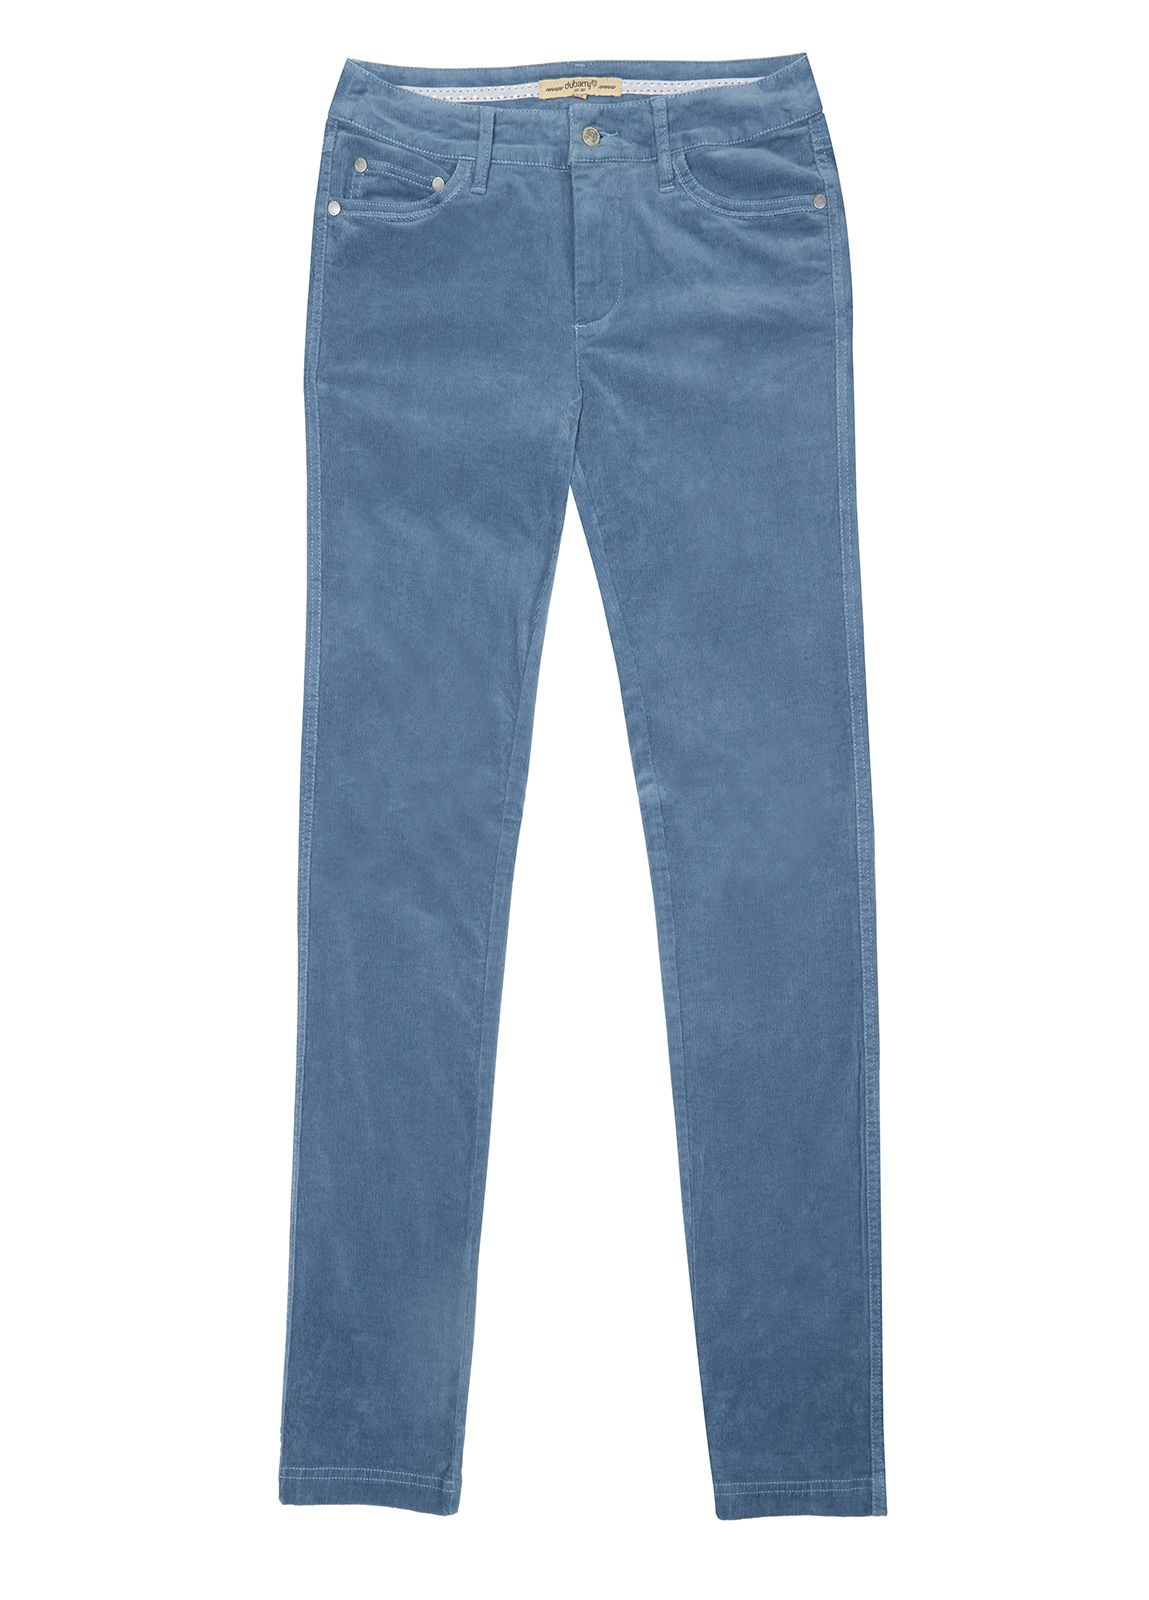 Dubarry_Honeysuckle Jeans - Denim_Image_2